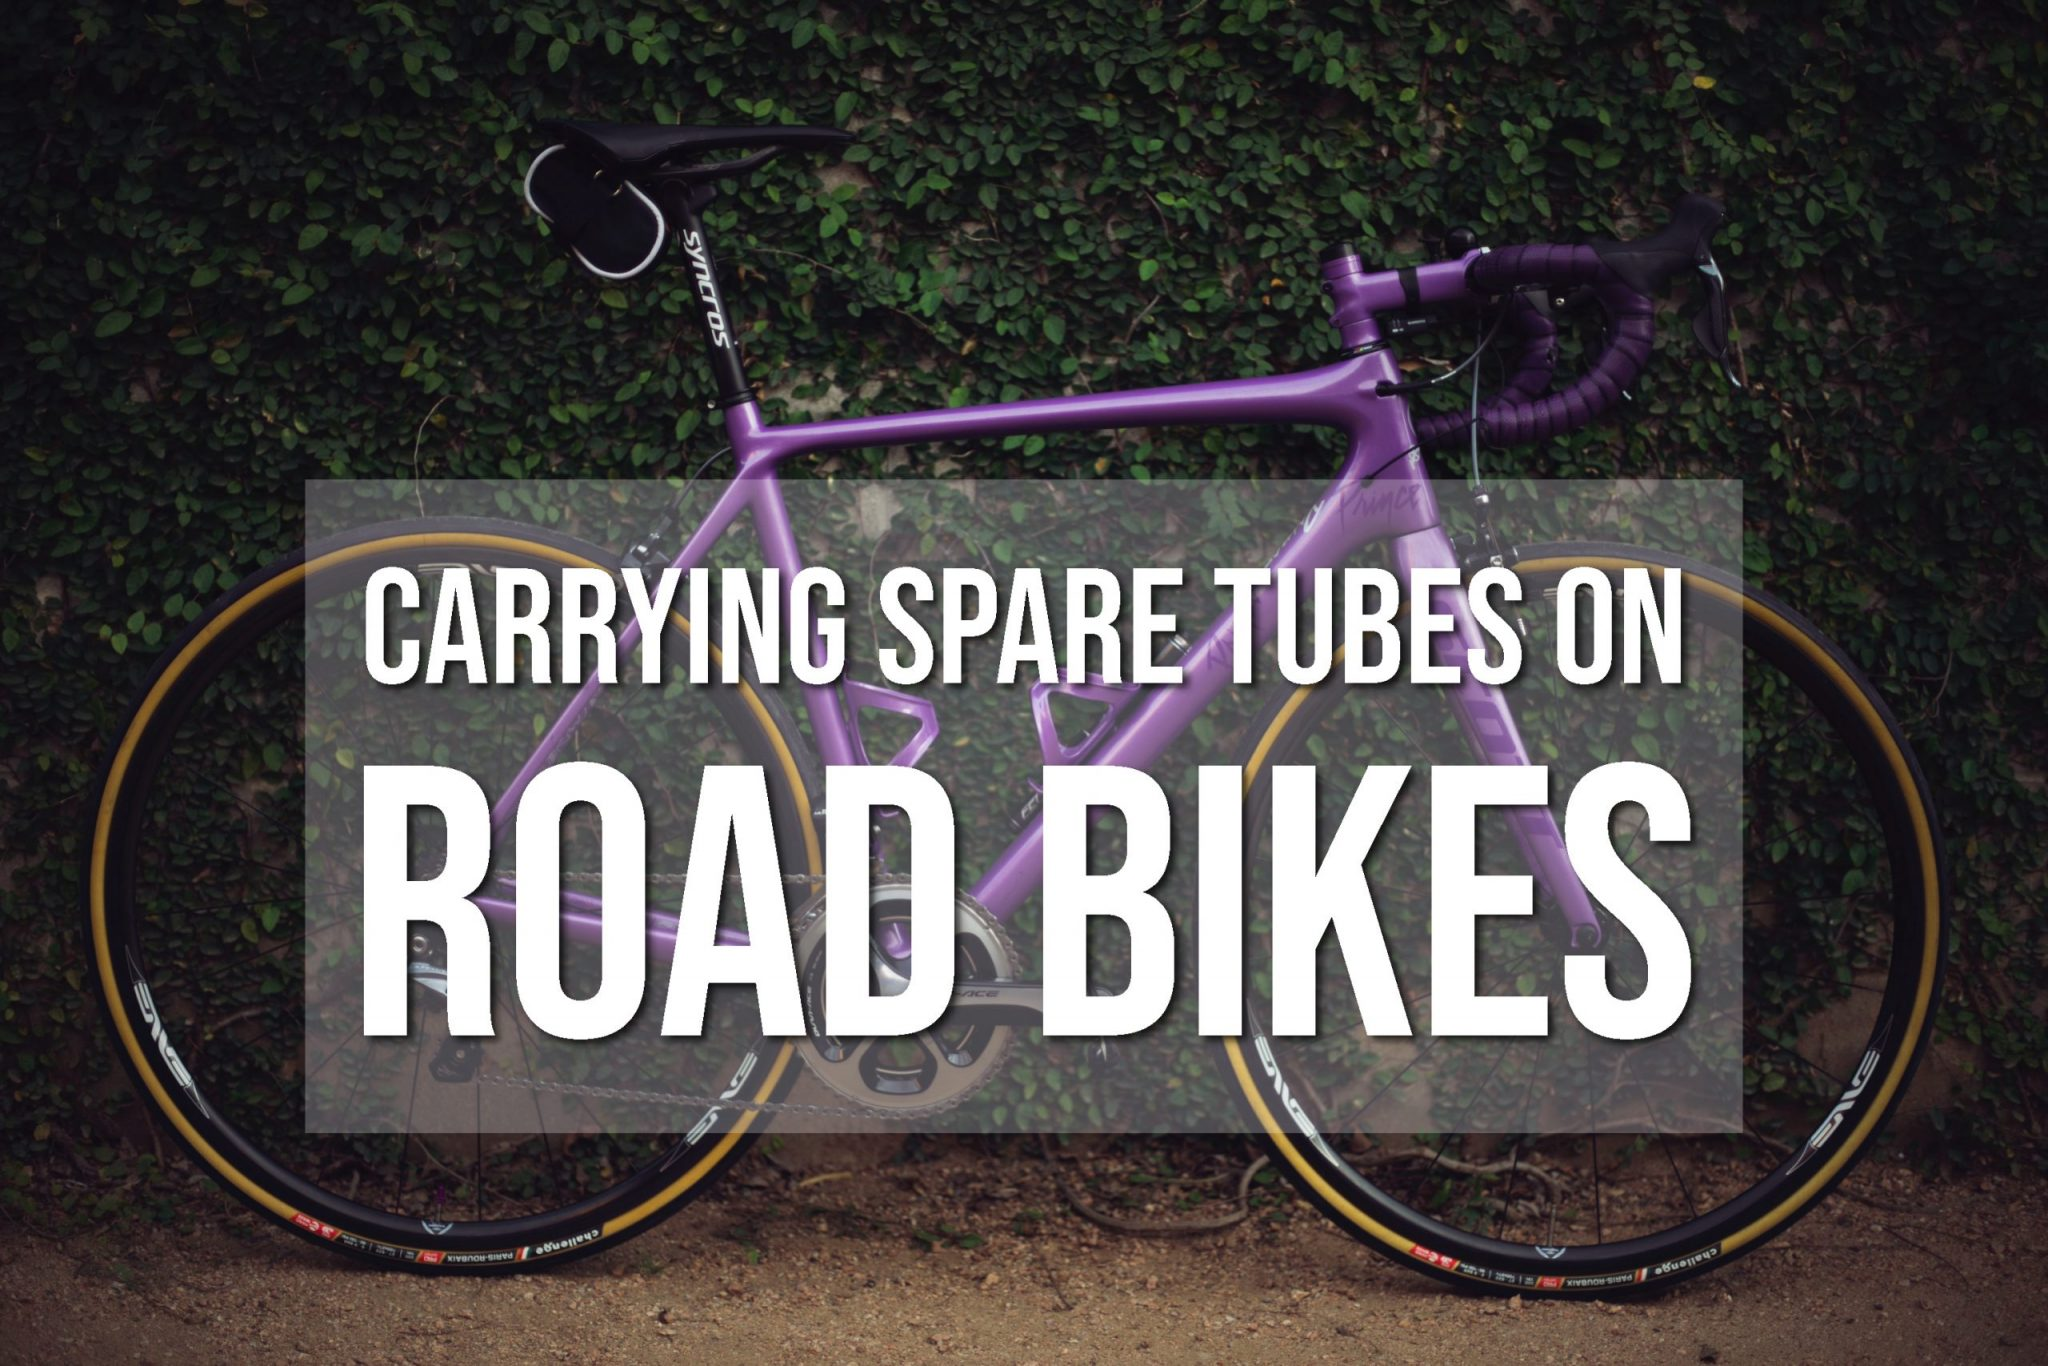 How To Carry Spare Tube On Road Bike